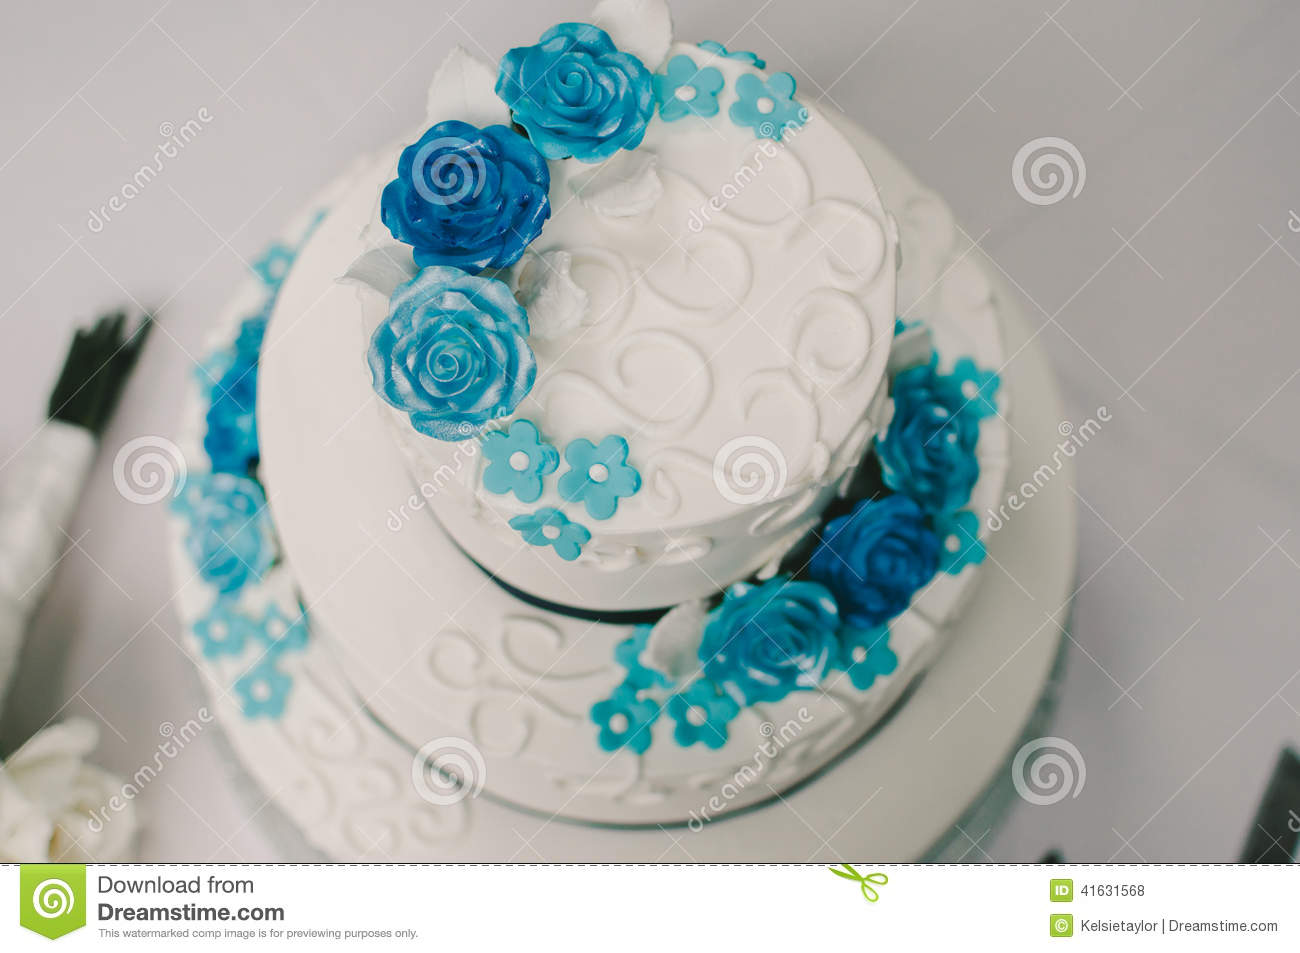 Blue and white flower wedding cake stock photo image of flowers blue and white flower wedding cake izmirmasajfo